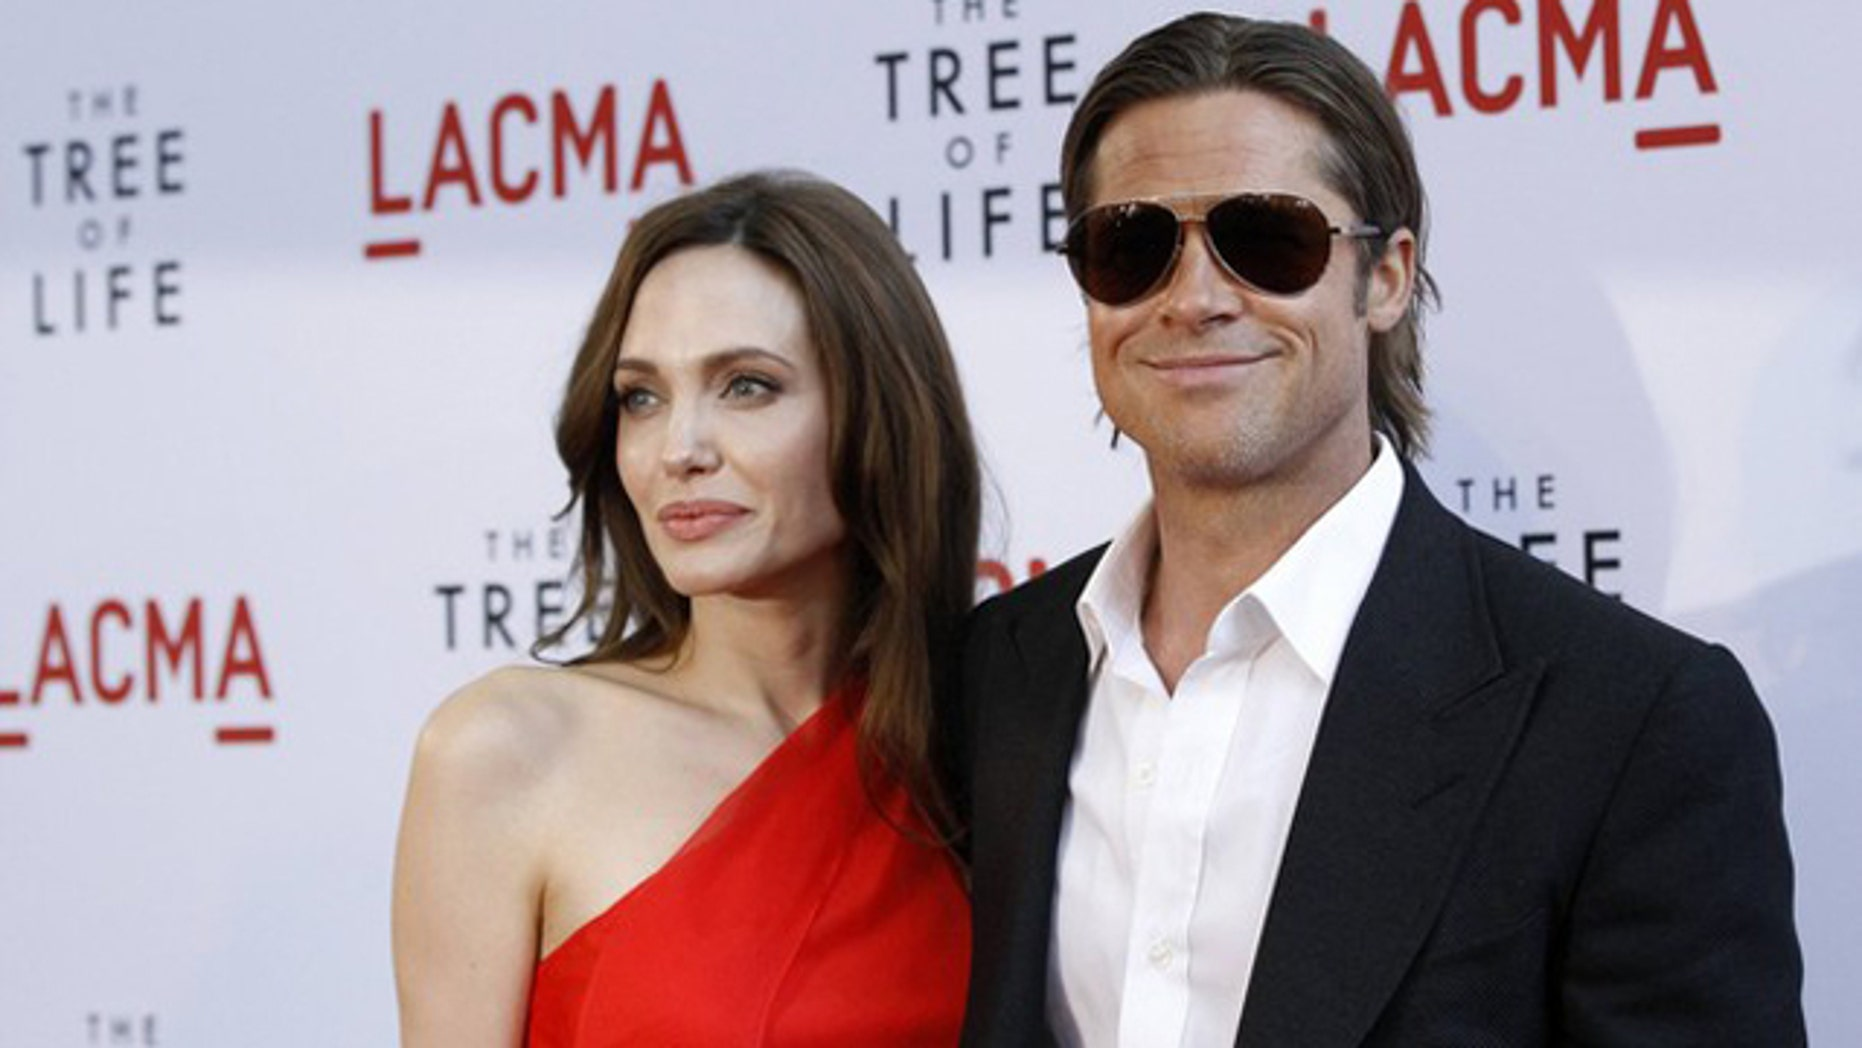 """Brad Pitt and actress Angelina Jolie at the """"Tree of Life"""" premiere."""